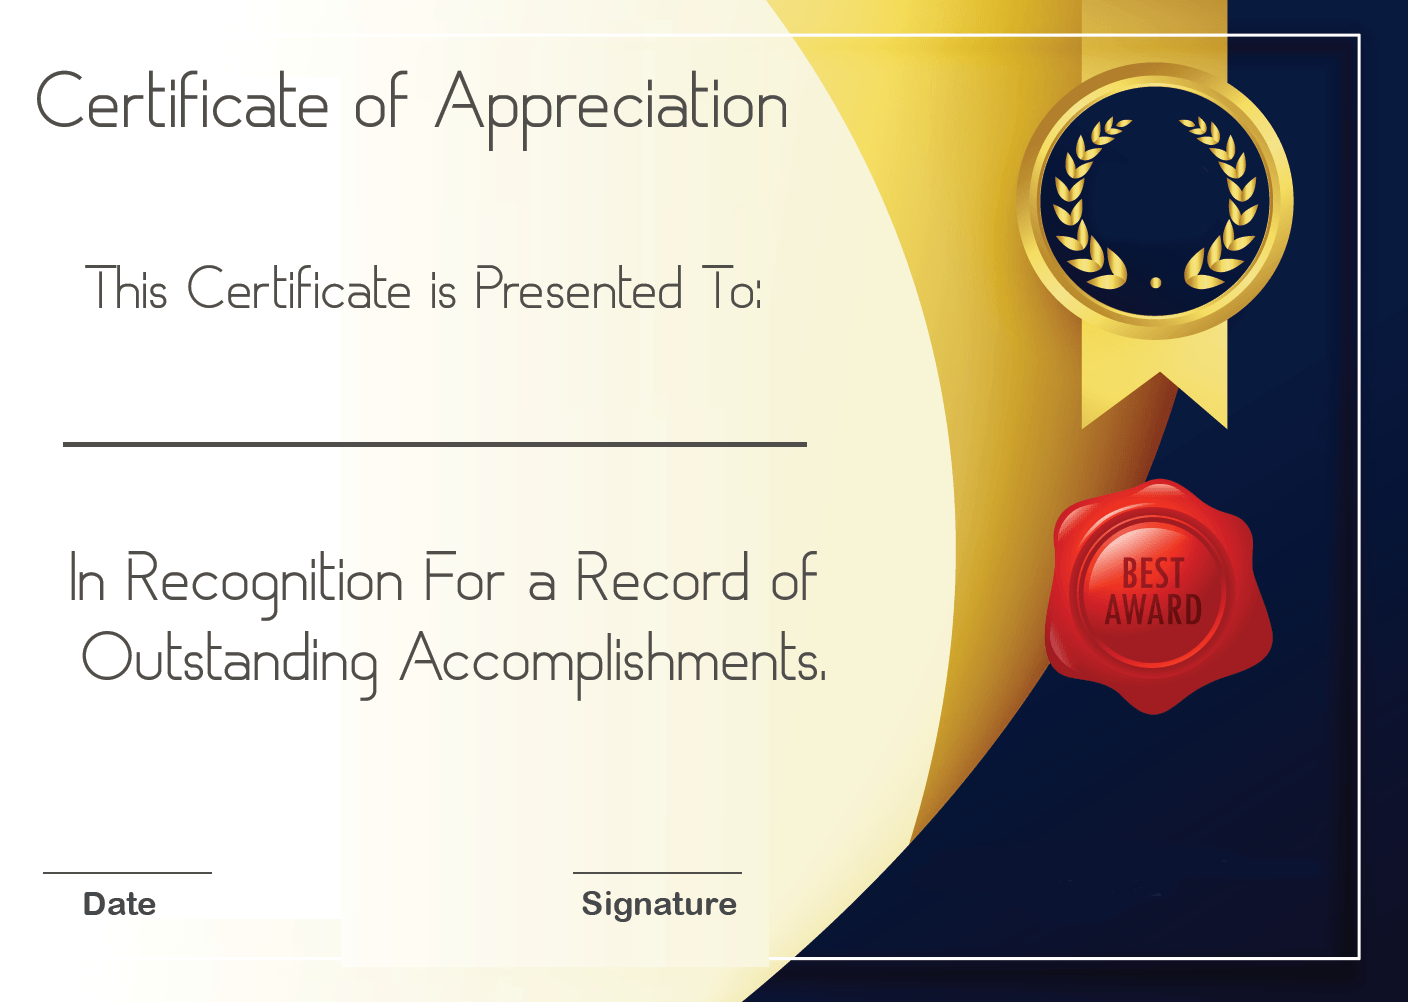 Certificate Of Appreciation Design